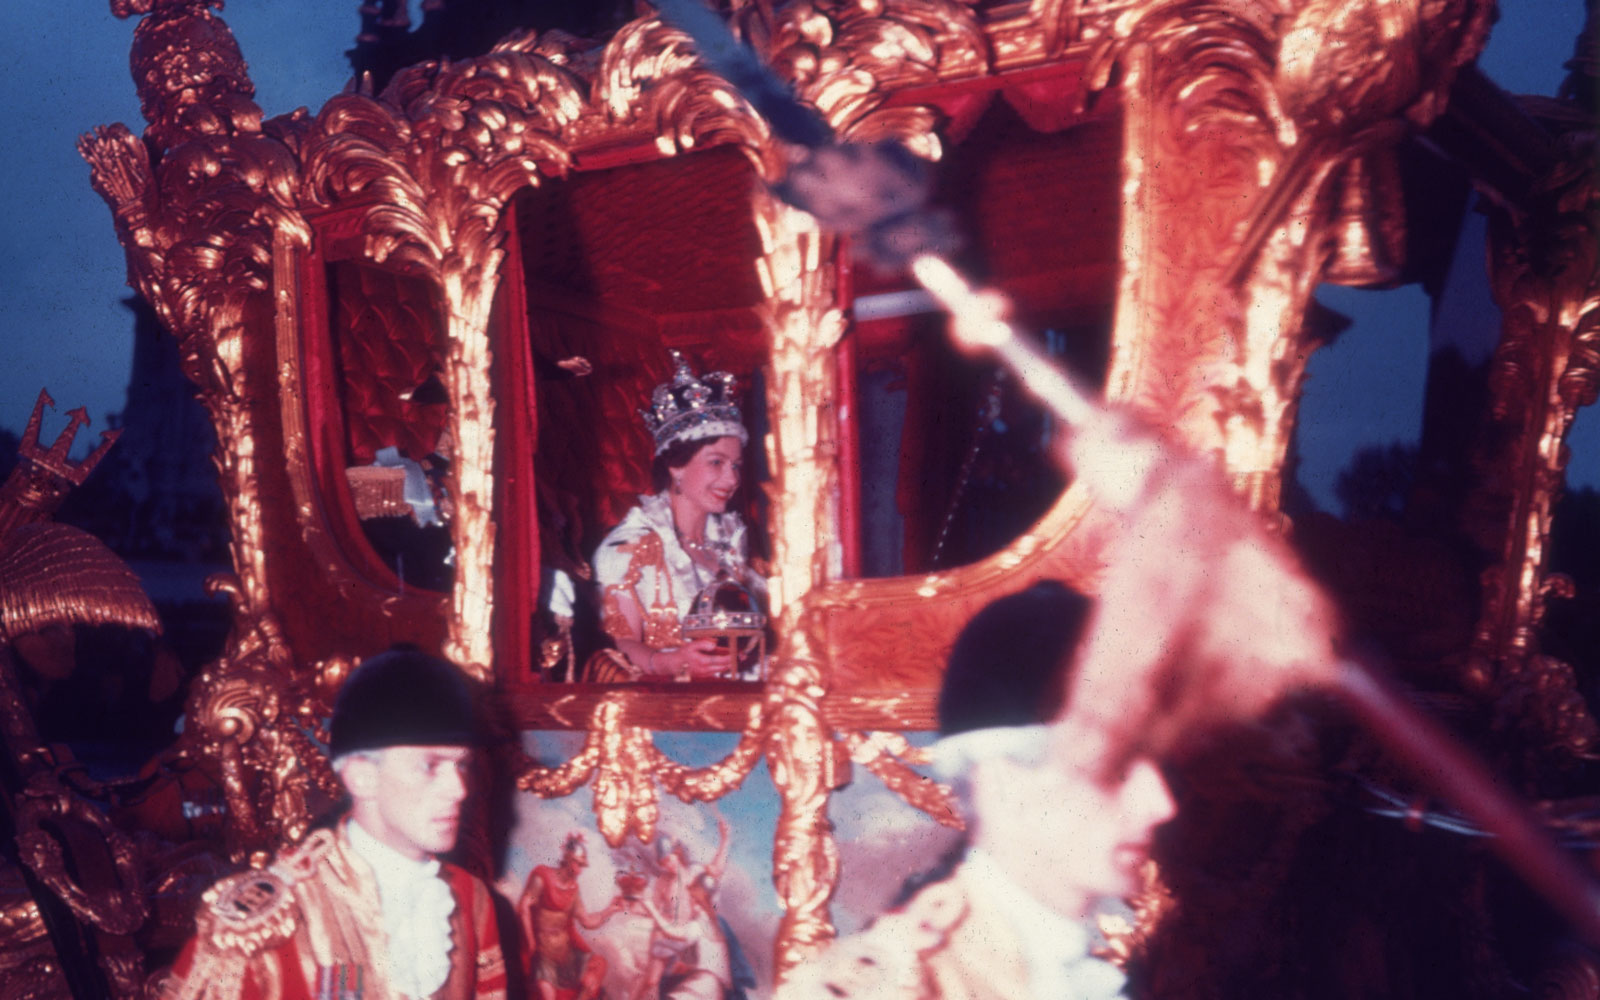 Queen Elizabeth shares coronation secrets and what it's like to wear a 2-pound crown